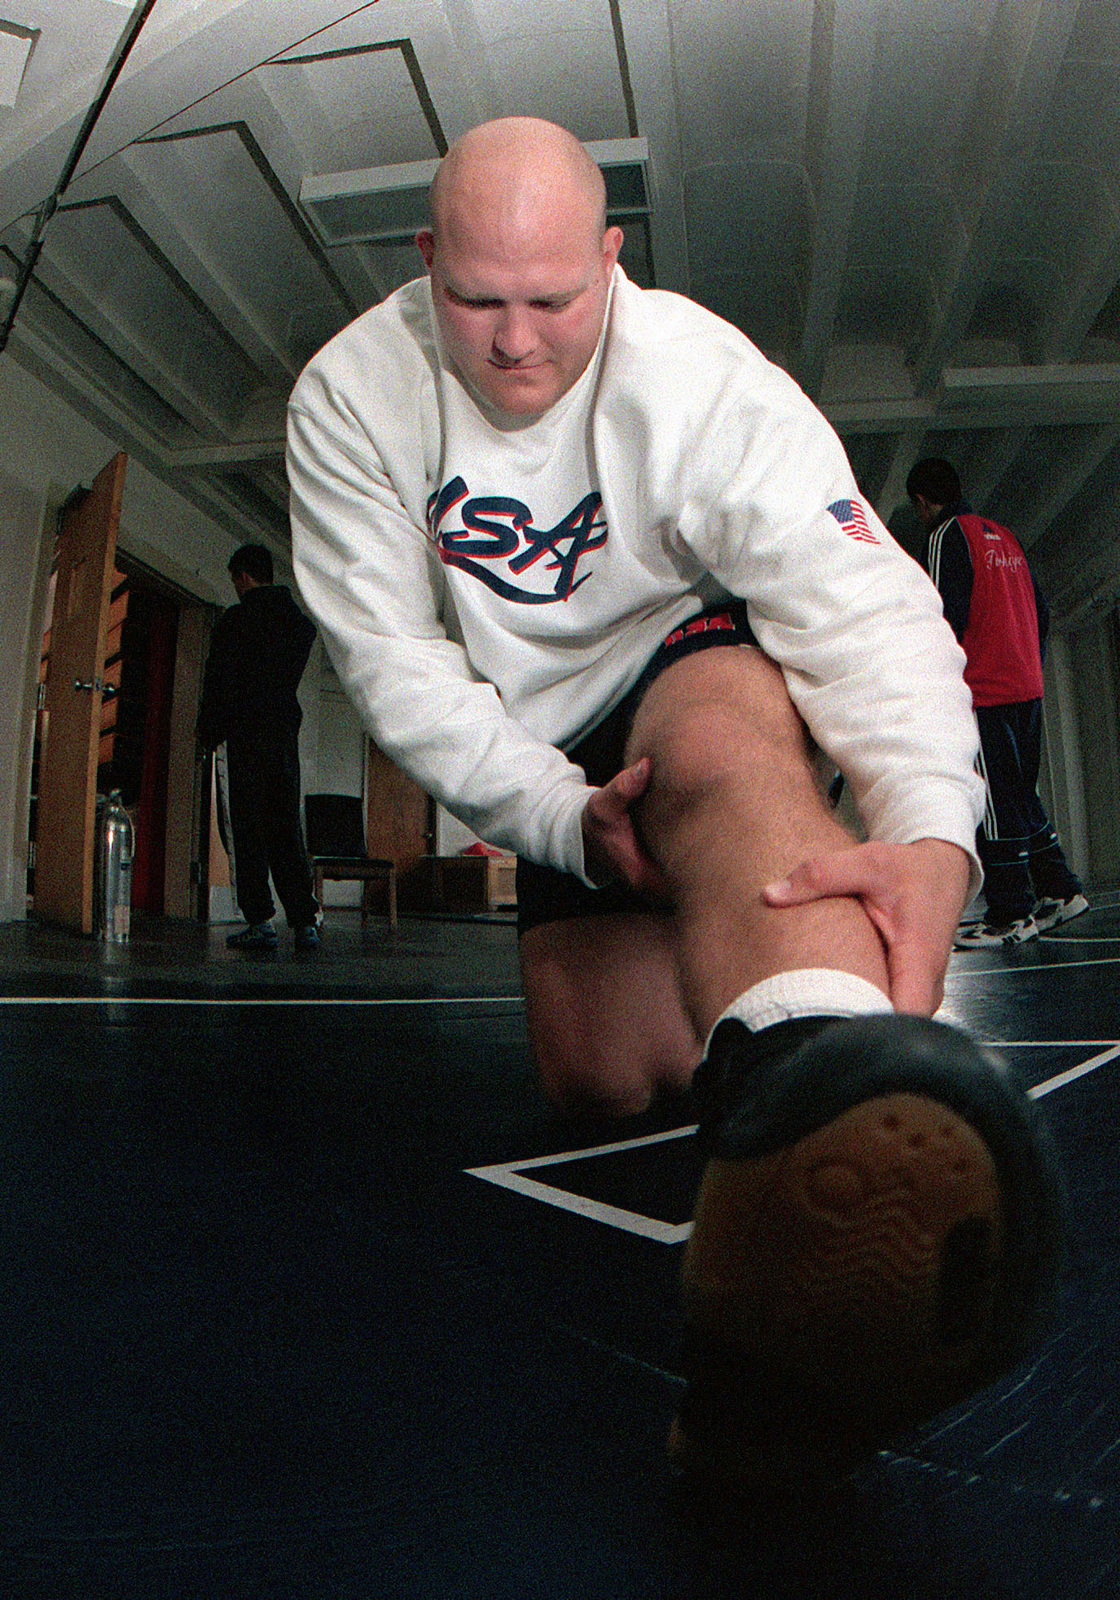 US Air Force SENIOR AIRMAN Corey Farkas, 10th Civil Engineering Squadron, Peterson Air Force Base, Colorado, stretches before his match at the 19th World Military Wrestling Championships held at Camp Lejeune Marine Corps Base, North Carolina, on October 26th, 2000. The Conseil International du Sport Militaire 19th World Military Wrestling Championship (CISM) is a multi-national wrestling tournament hosted by Lejeune, from Oct. 25-29. Competing nations include: Brazil, China, Estonia, Finland, Germany, Greece, Slovakia, Turkey, the United States and Vietnam. Wrestlers will be competing in two different competitions, Free-Style and Greco-Roman